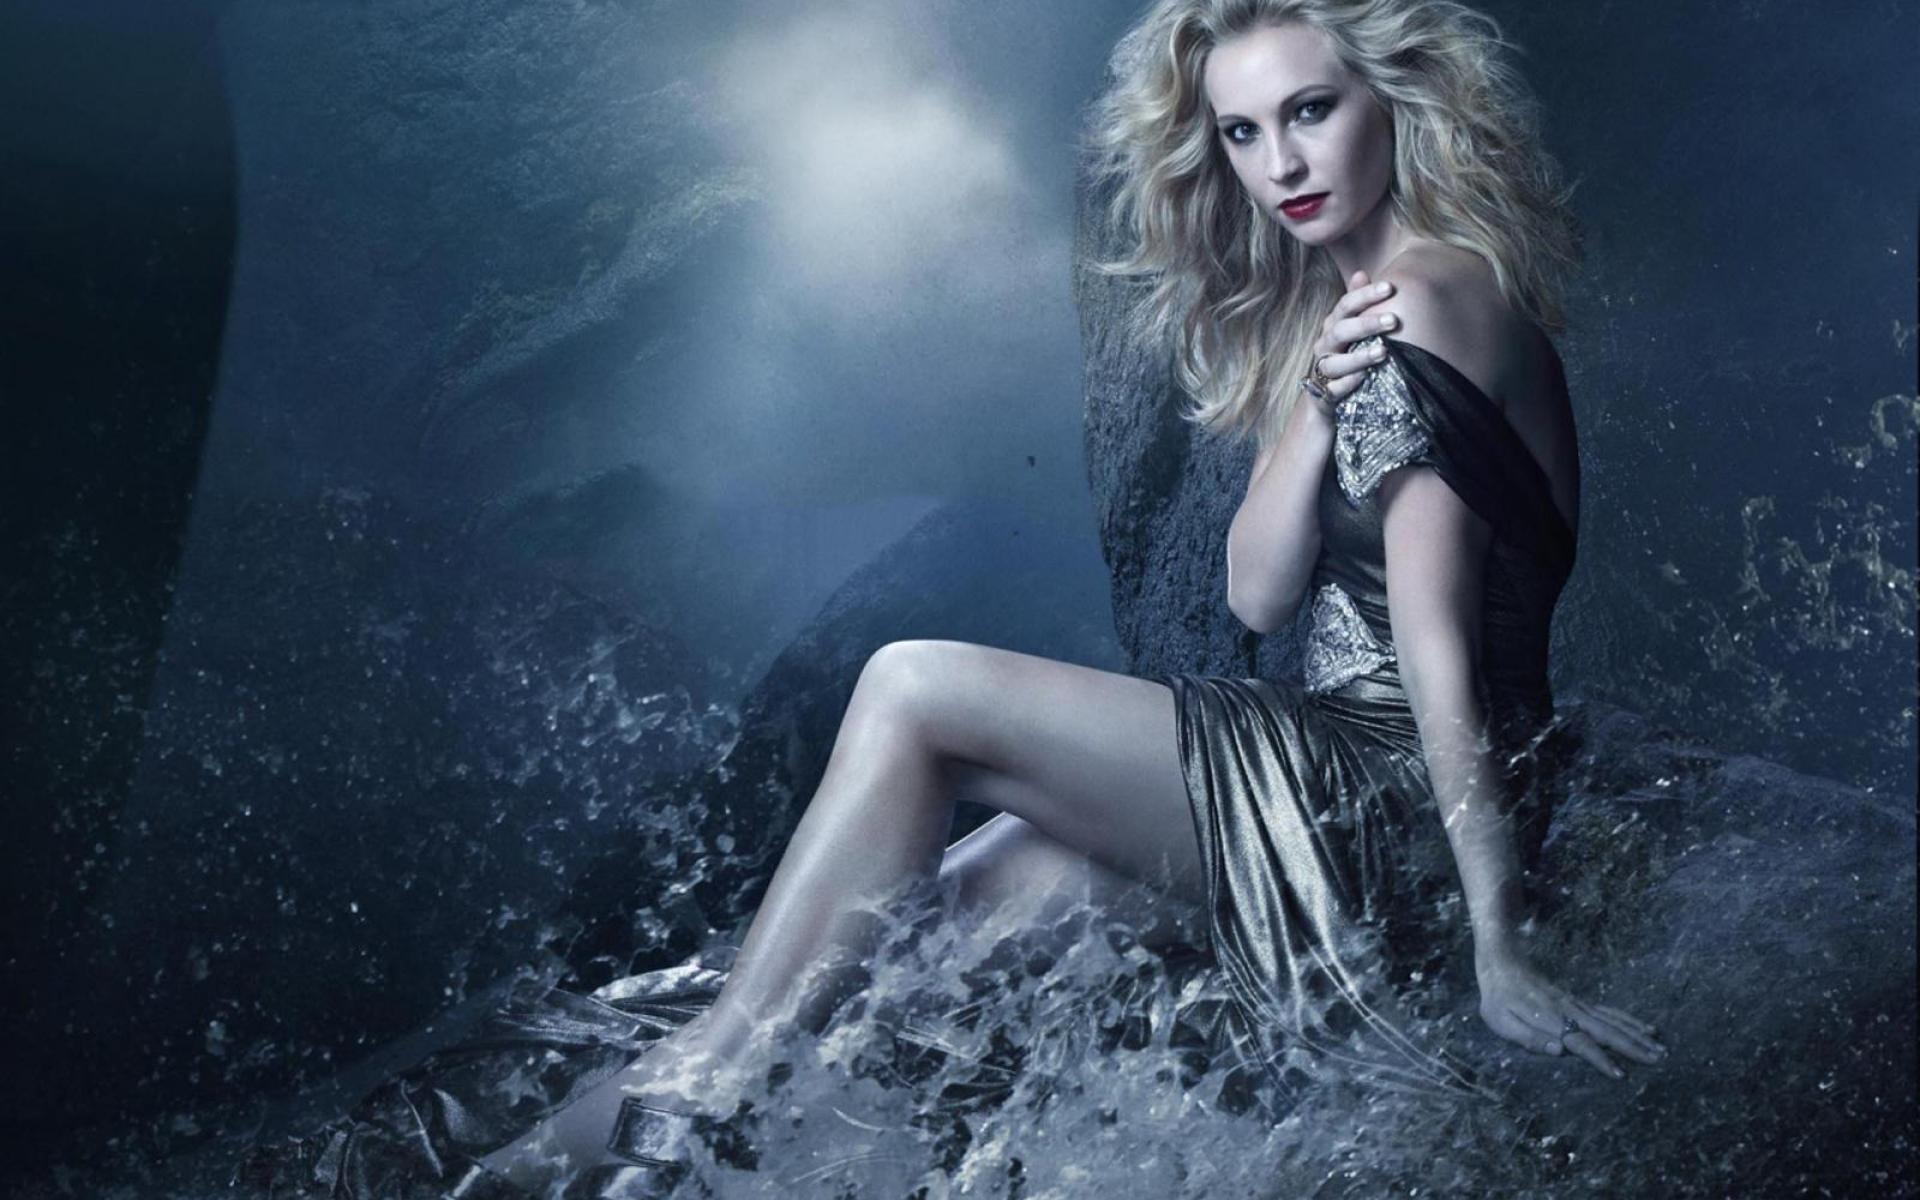 1920x1200 - Candice Accola Wallpapers 30